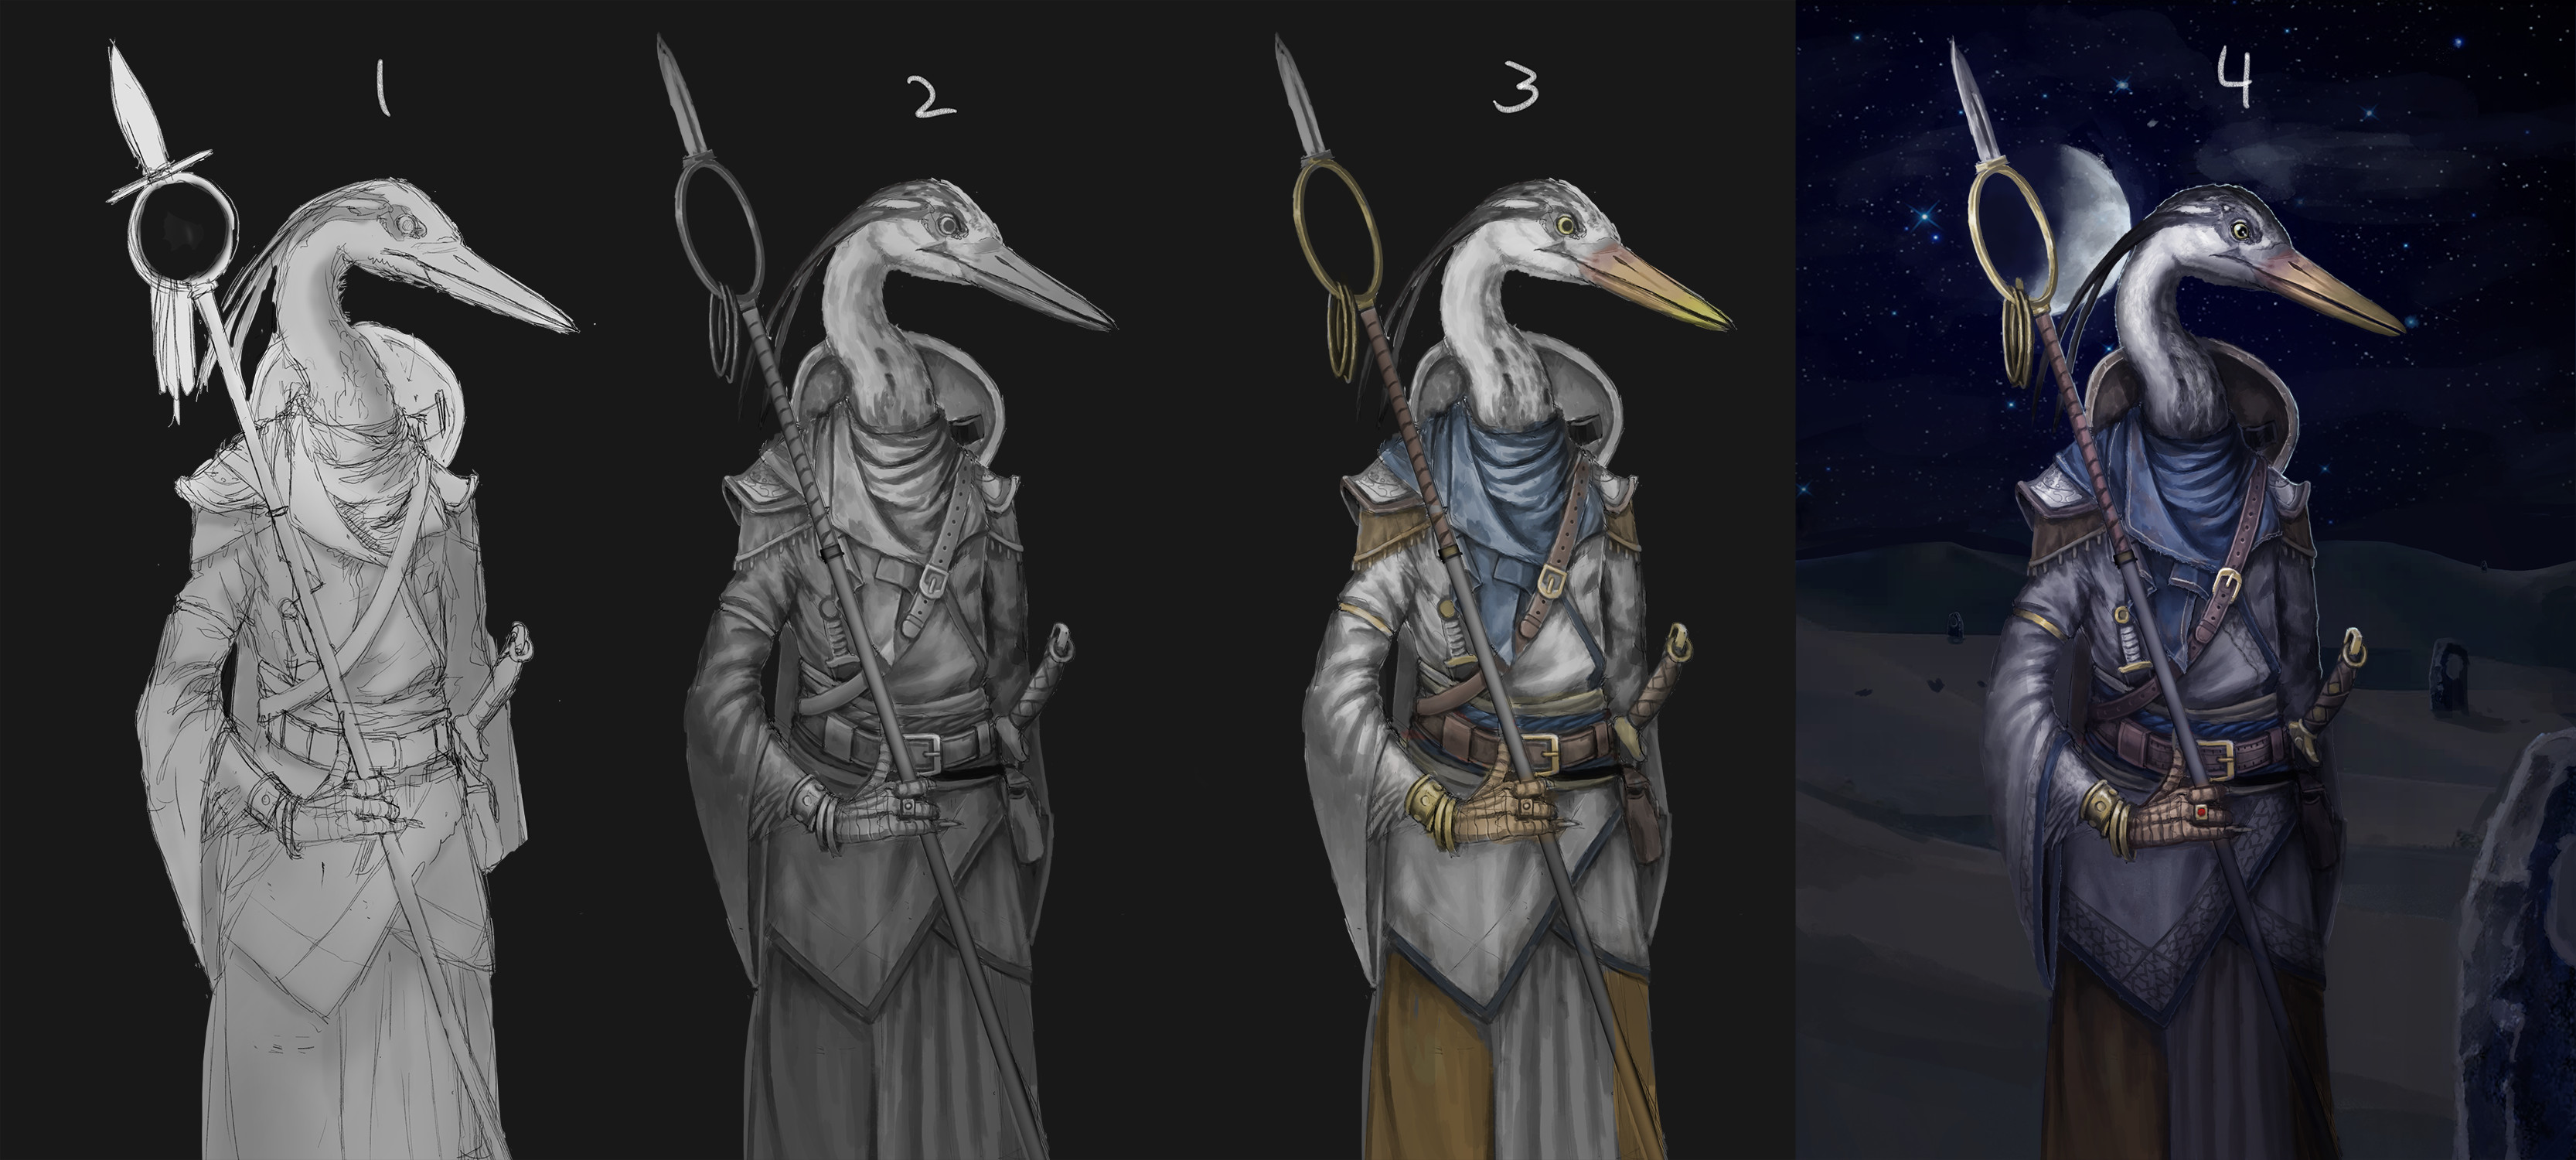 1. Initial sketch and playing around with lighting. 2. Grayscale and refining the lighting/details.  3. Colors overlaid onto the grayscale.  4. Lots of detailing. Fixed the color balance to a more blueish tint and added a simple background.